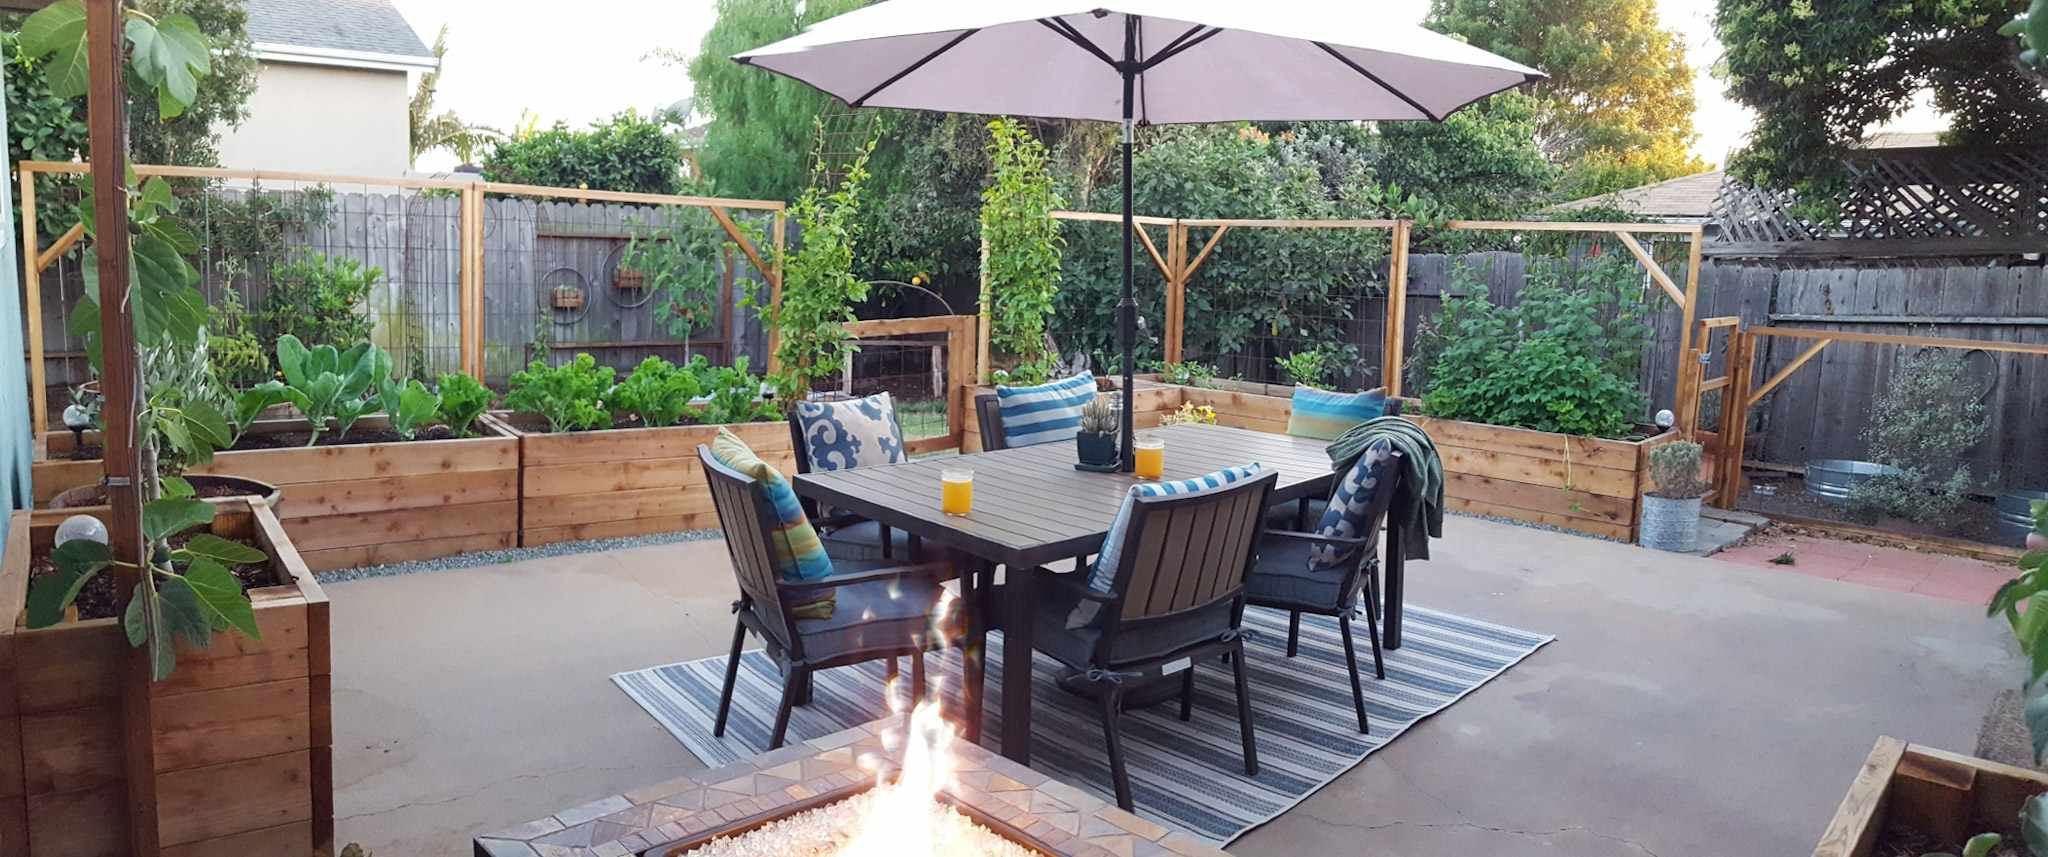 how to build a trellis inexpensive